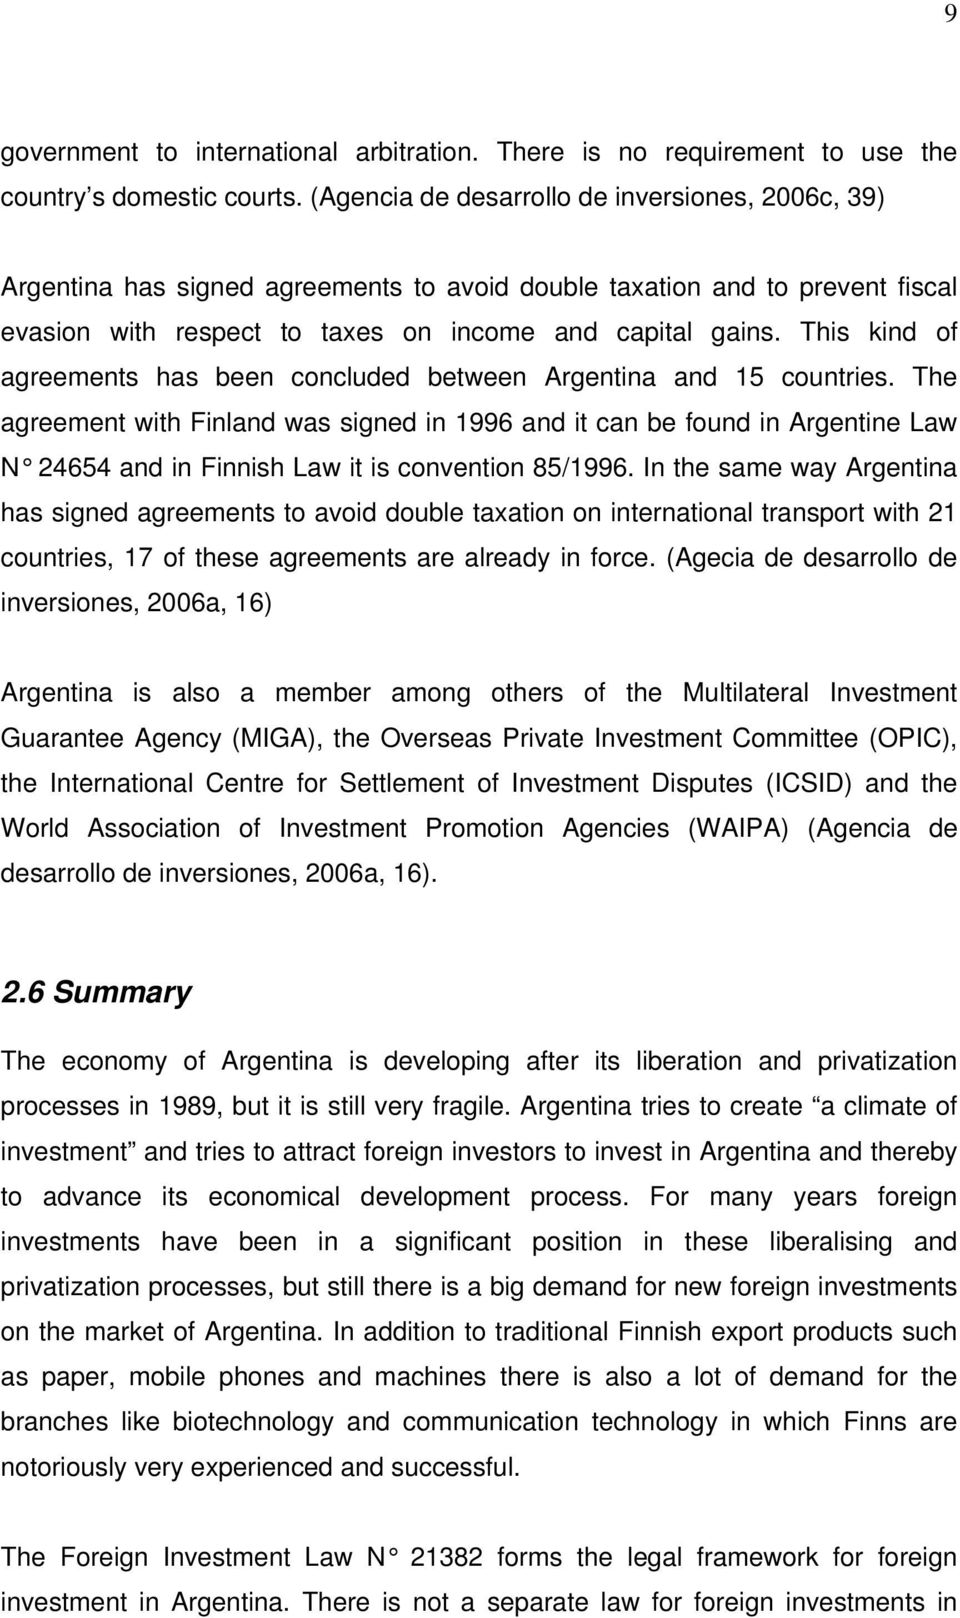 This kind of agreements has been concluded between Argentina and 15 countries.